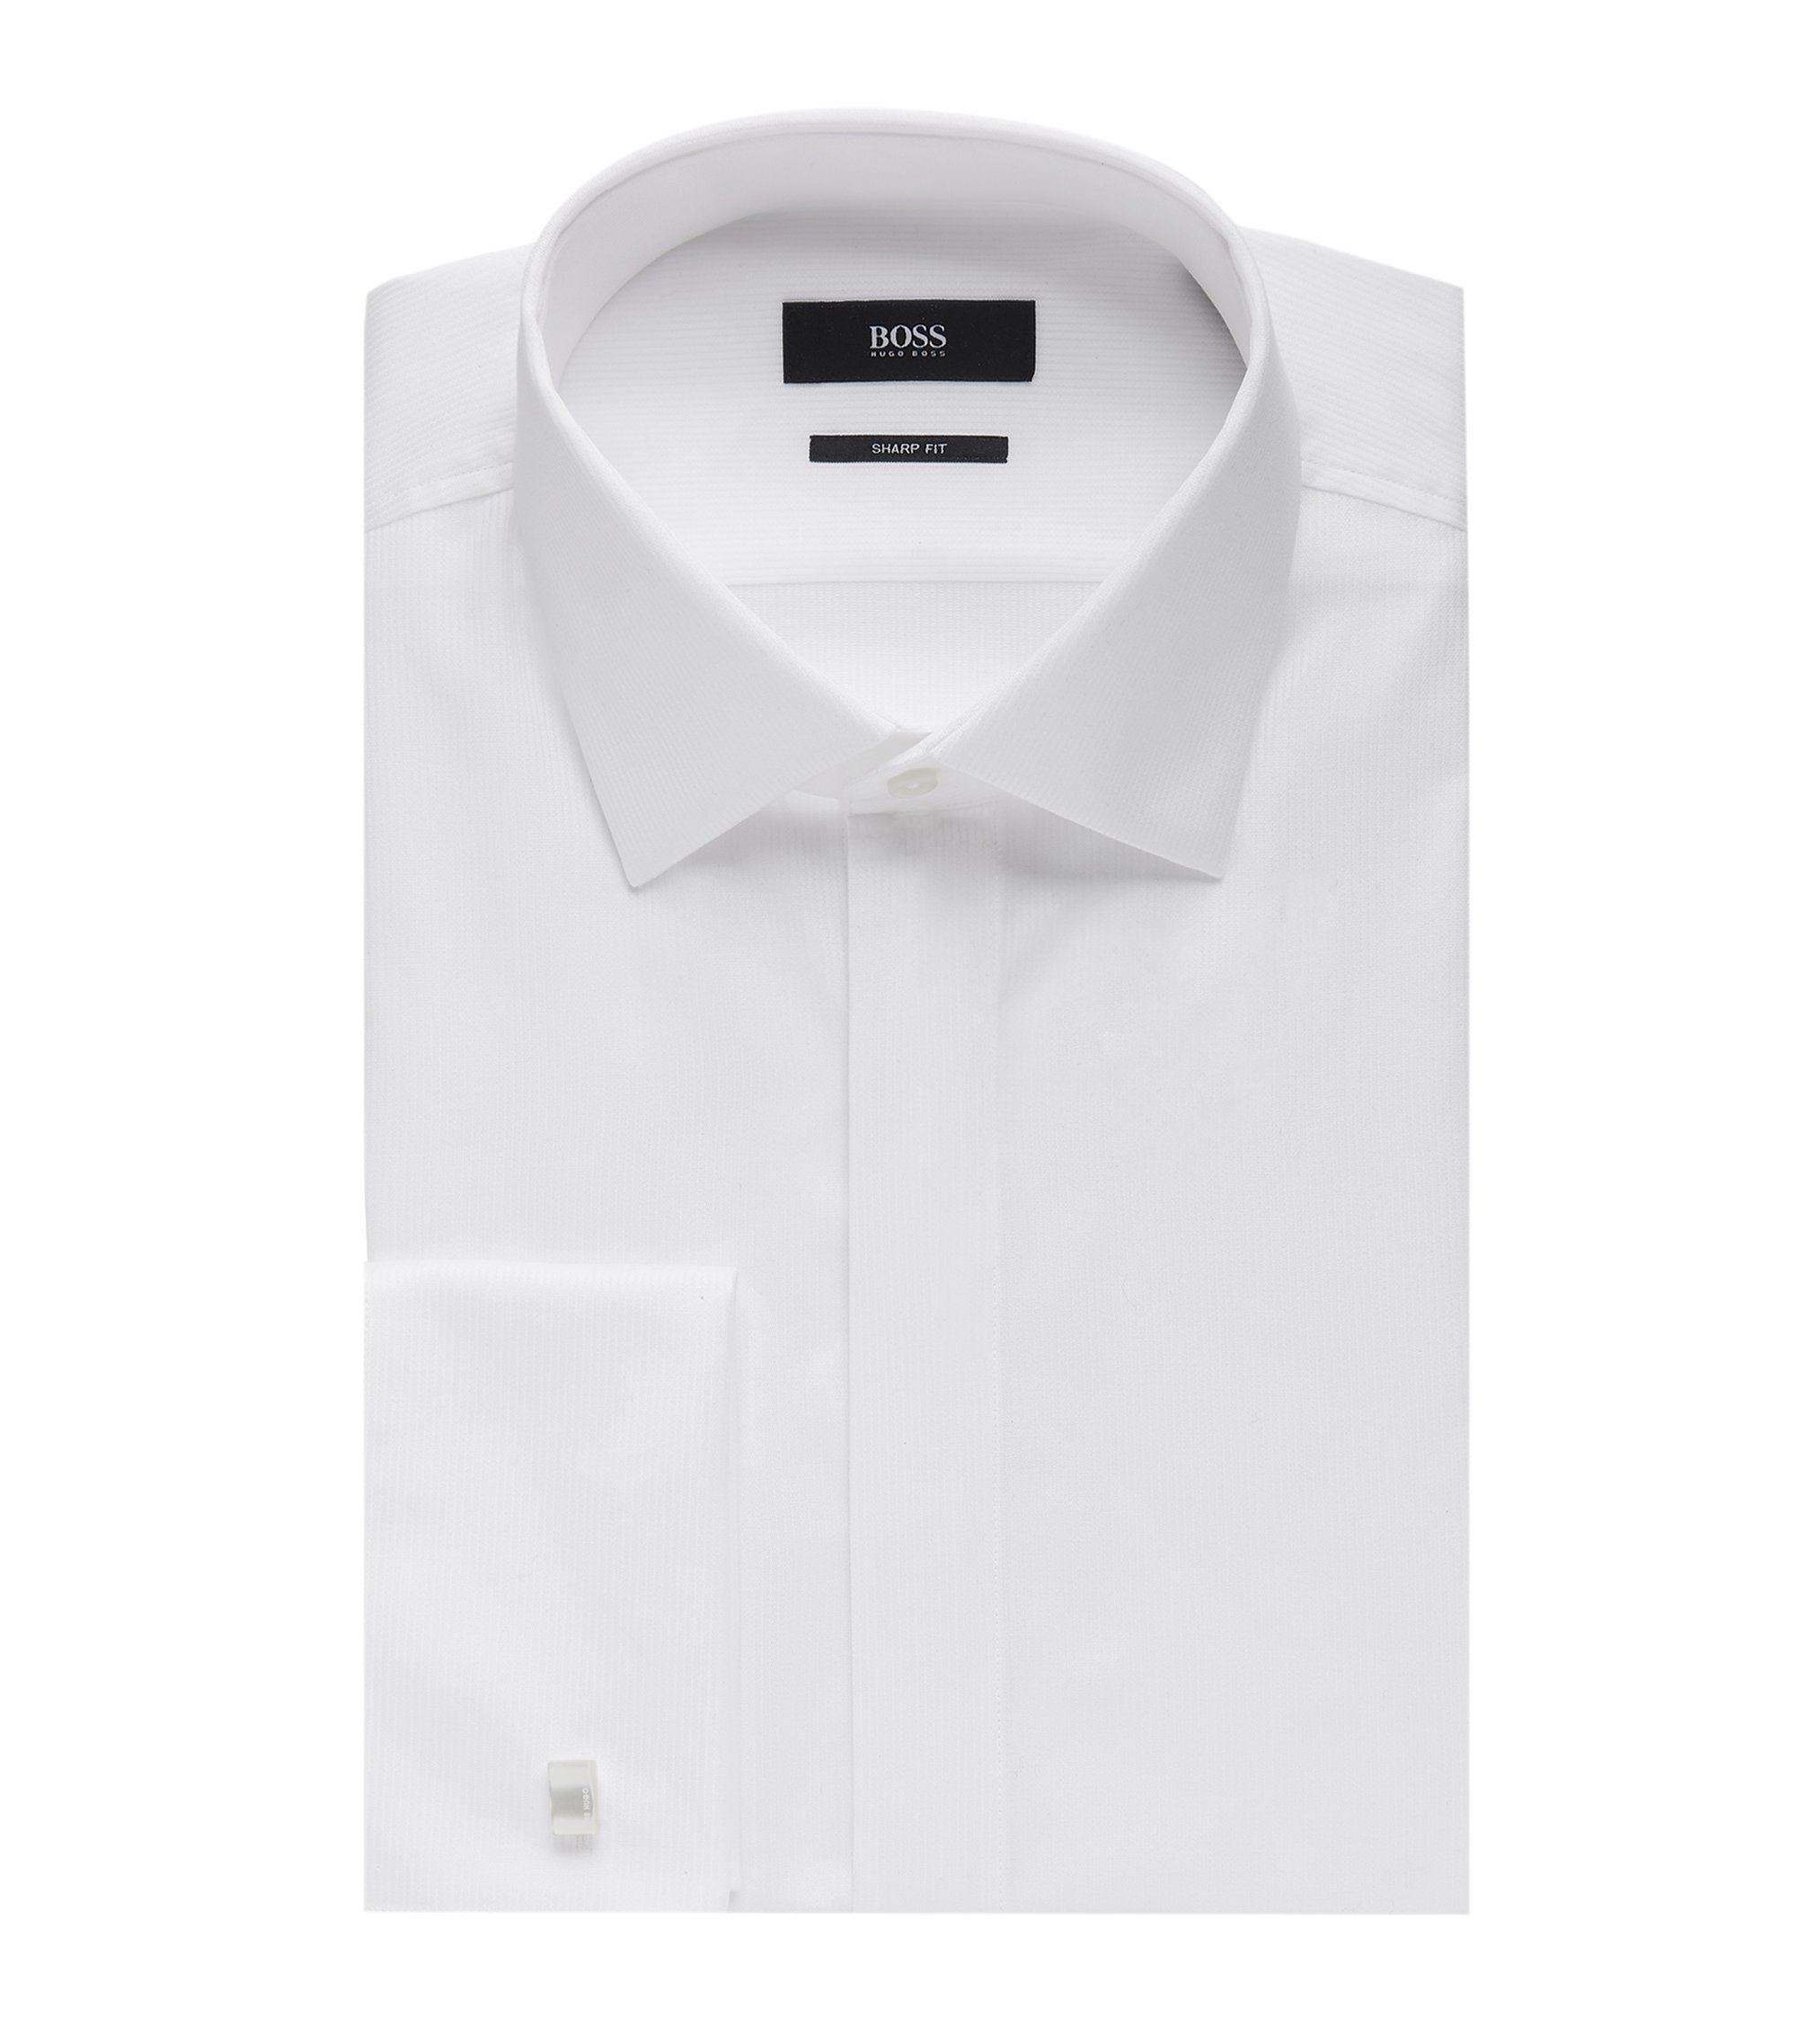 French Cuff Pique Cotton Dress Shirt, Slim Fit | Marlyn US, White